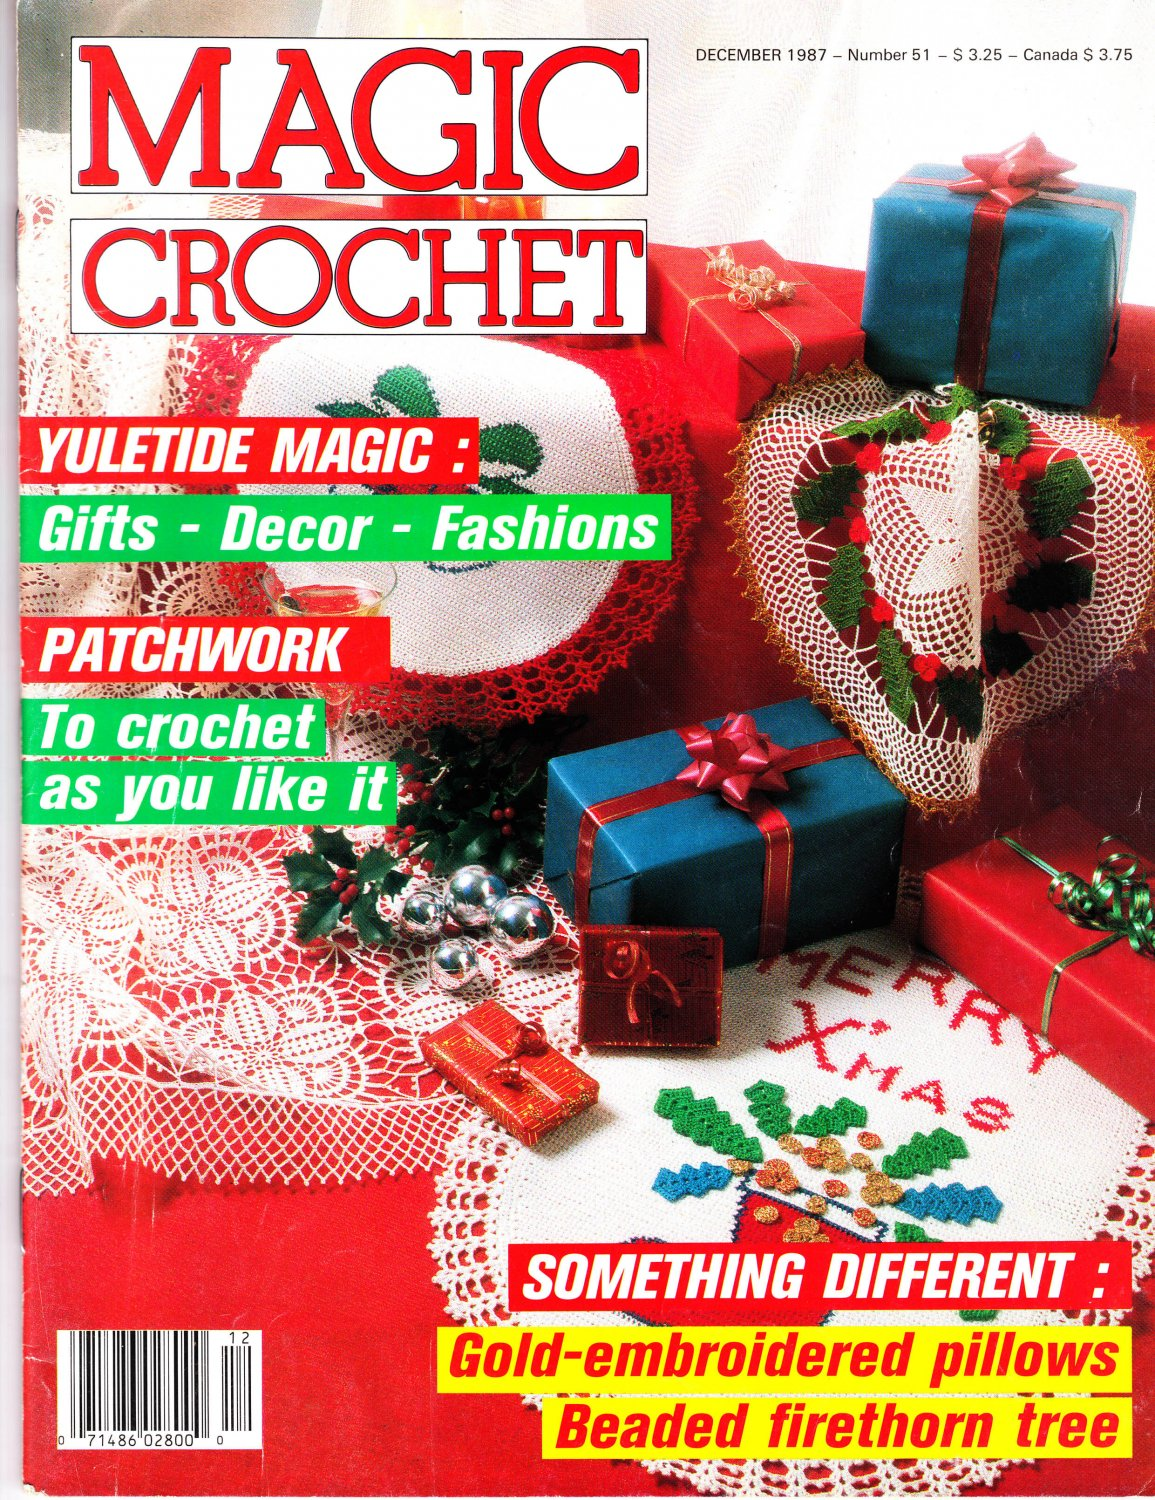 Magic Crochet Magazine Issue December 1987 Number 51